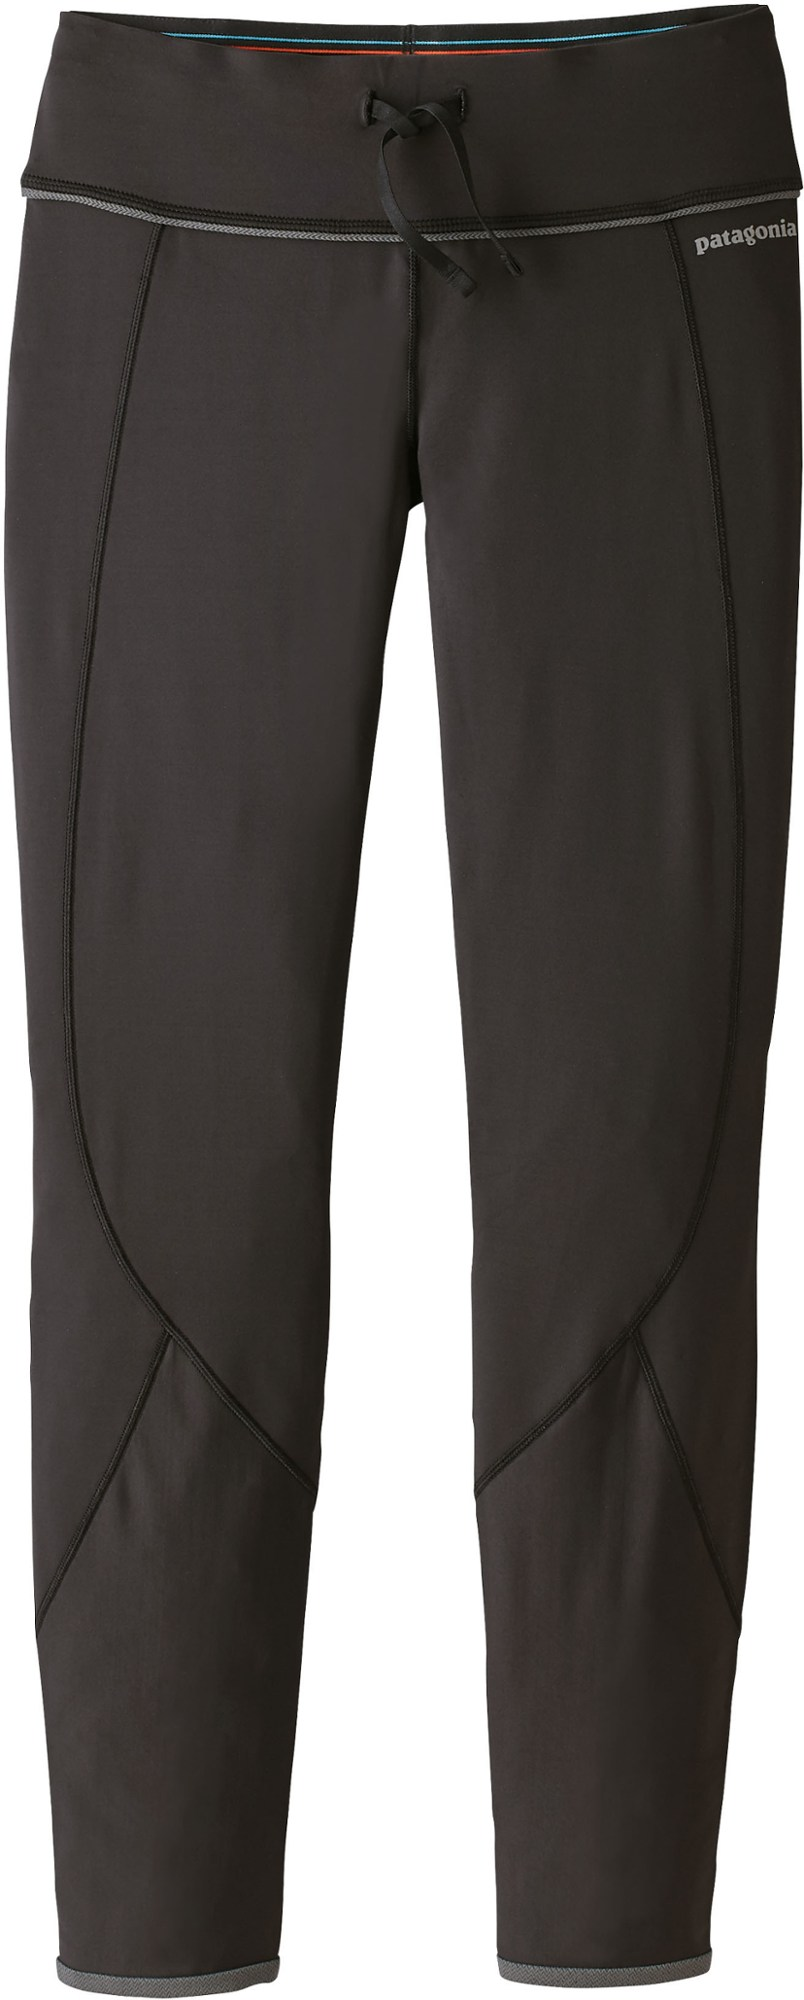 Patagonia Peak Mission Tights - Women's